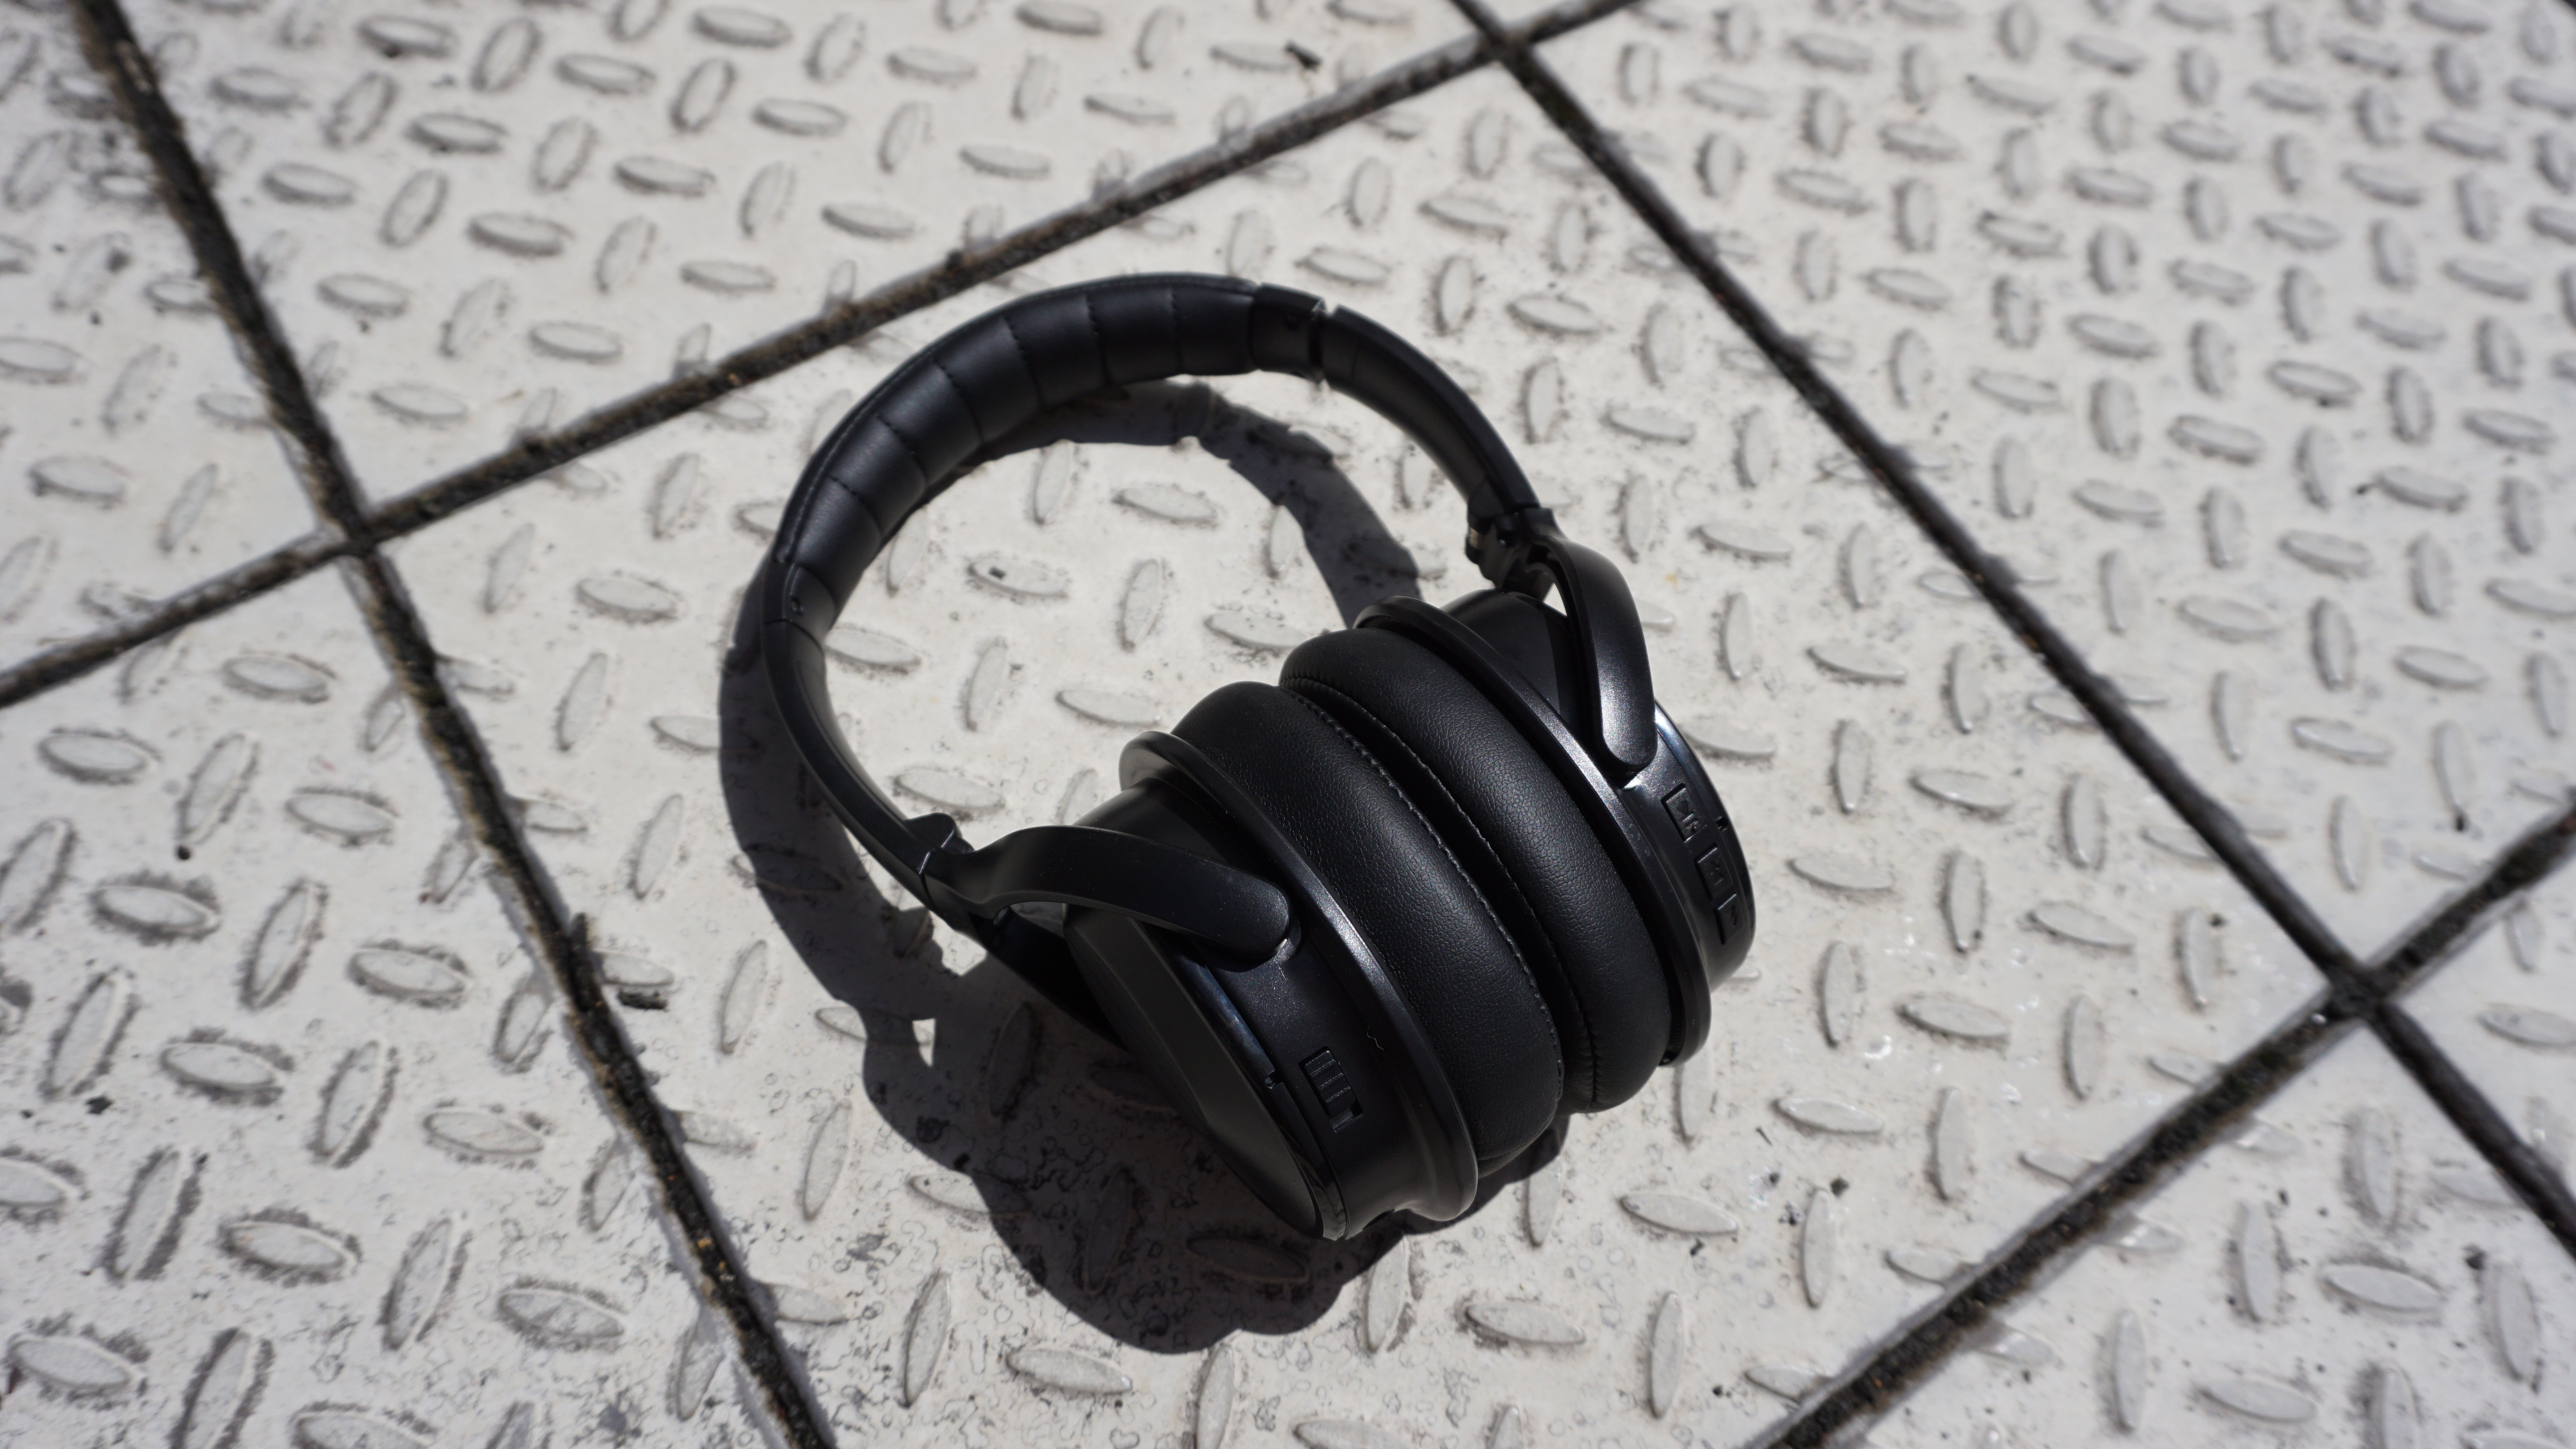 c7b544842ca KitSound Immerse Wireless Headphones Review | Trusted Reviews